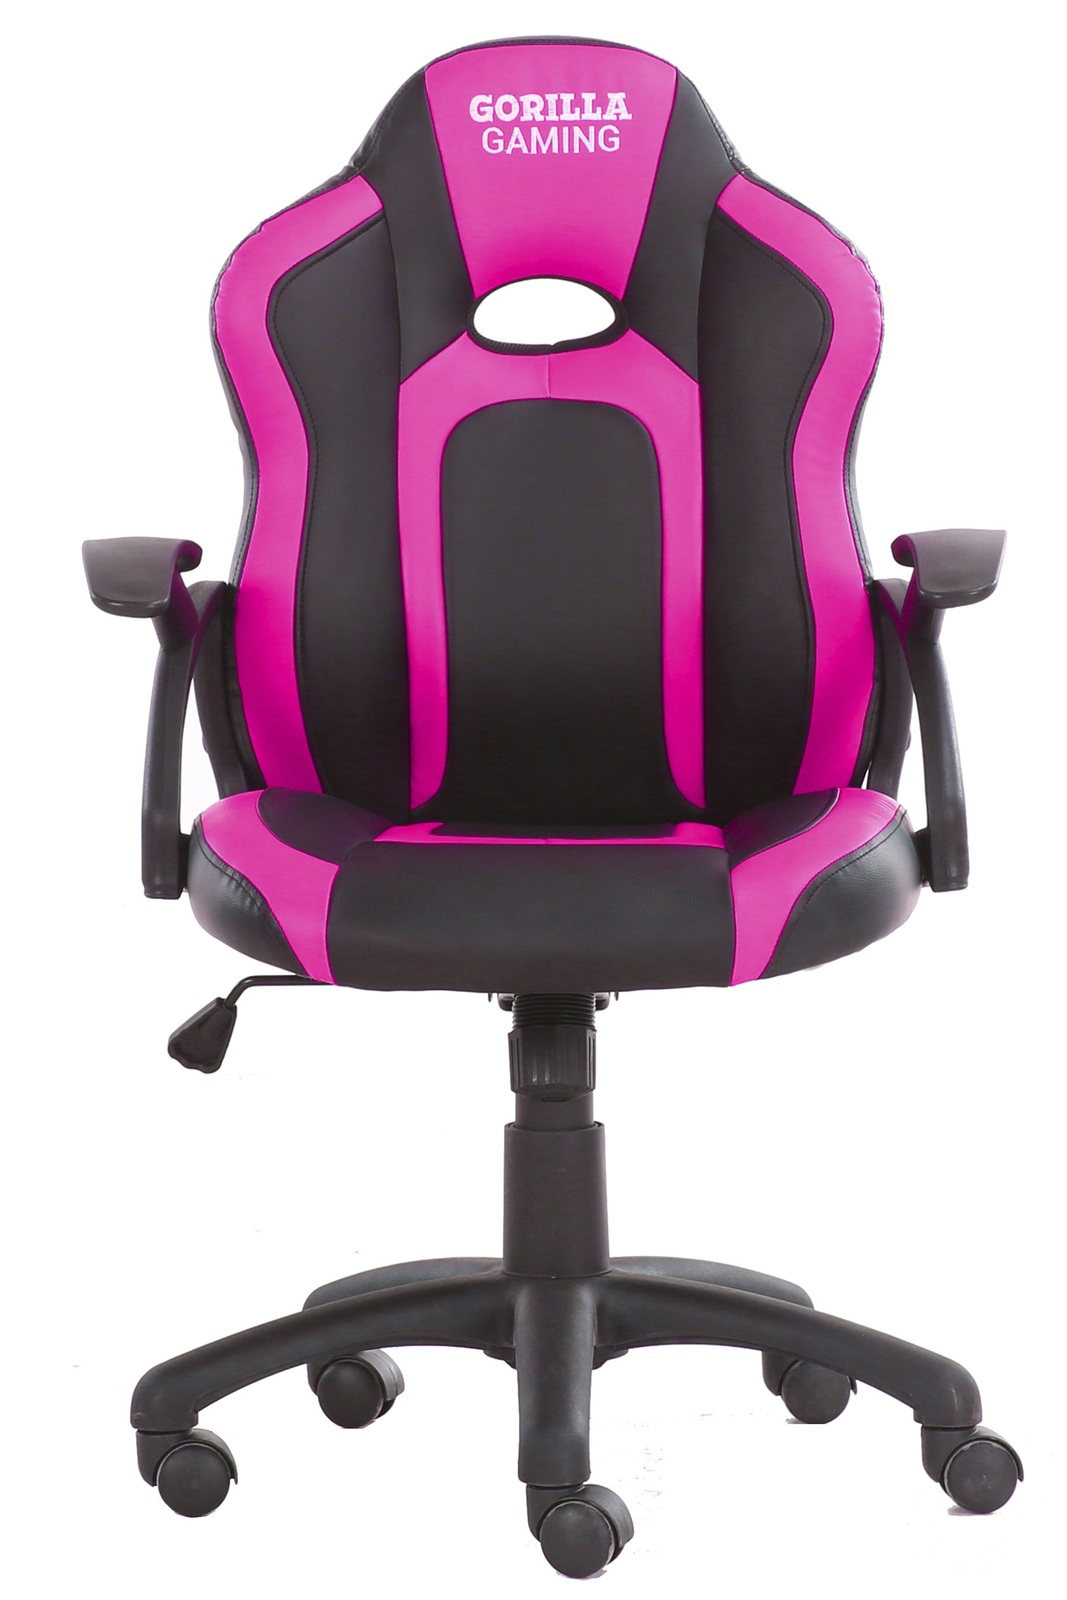 Gorilla Gaming Little Monkey Chair - Pink & Black for  image